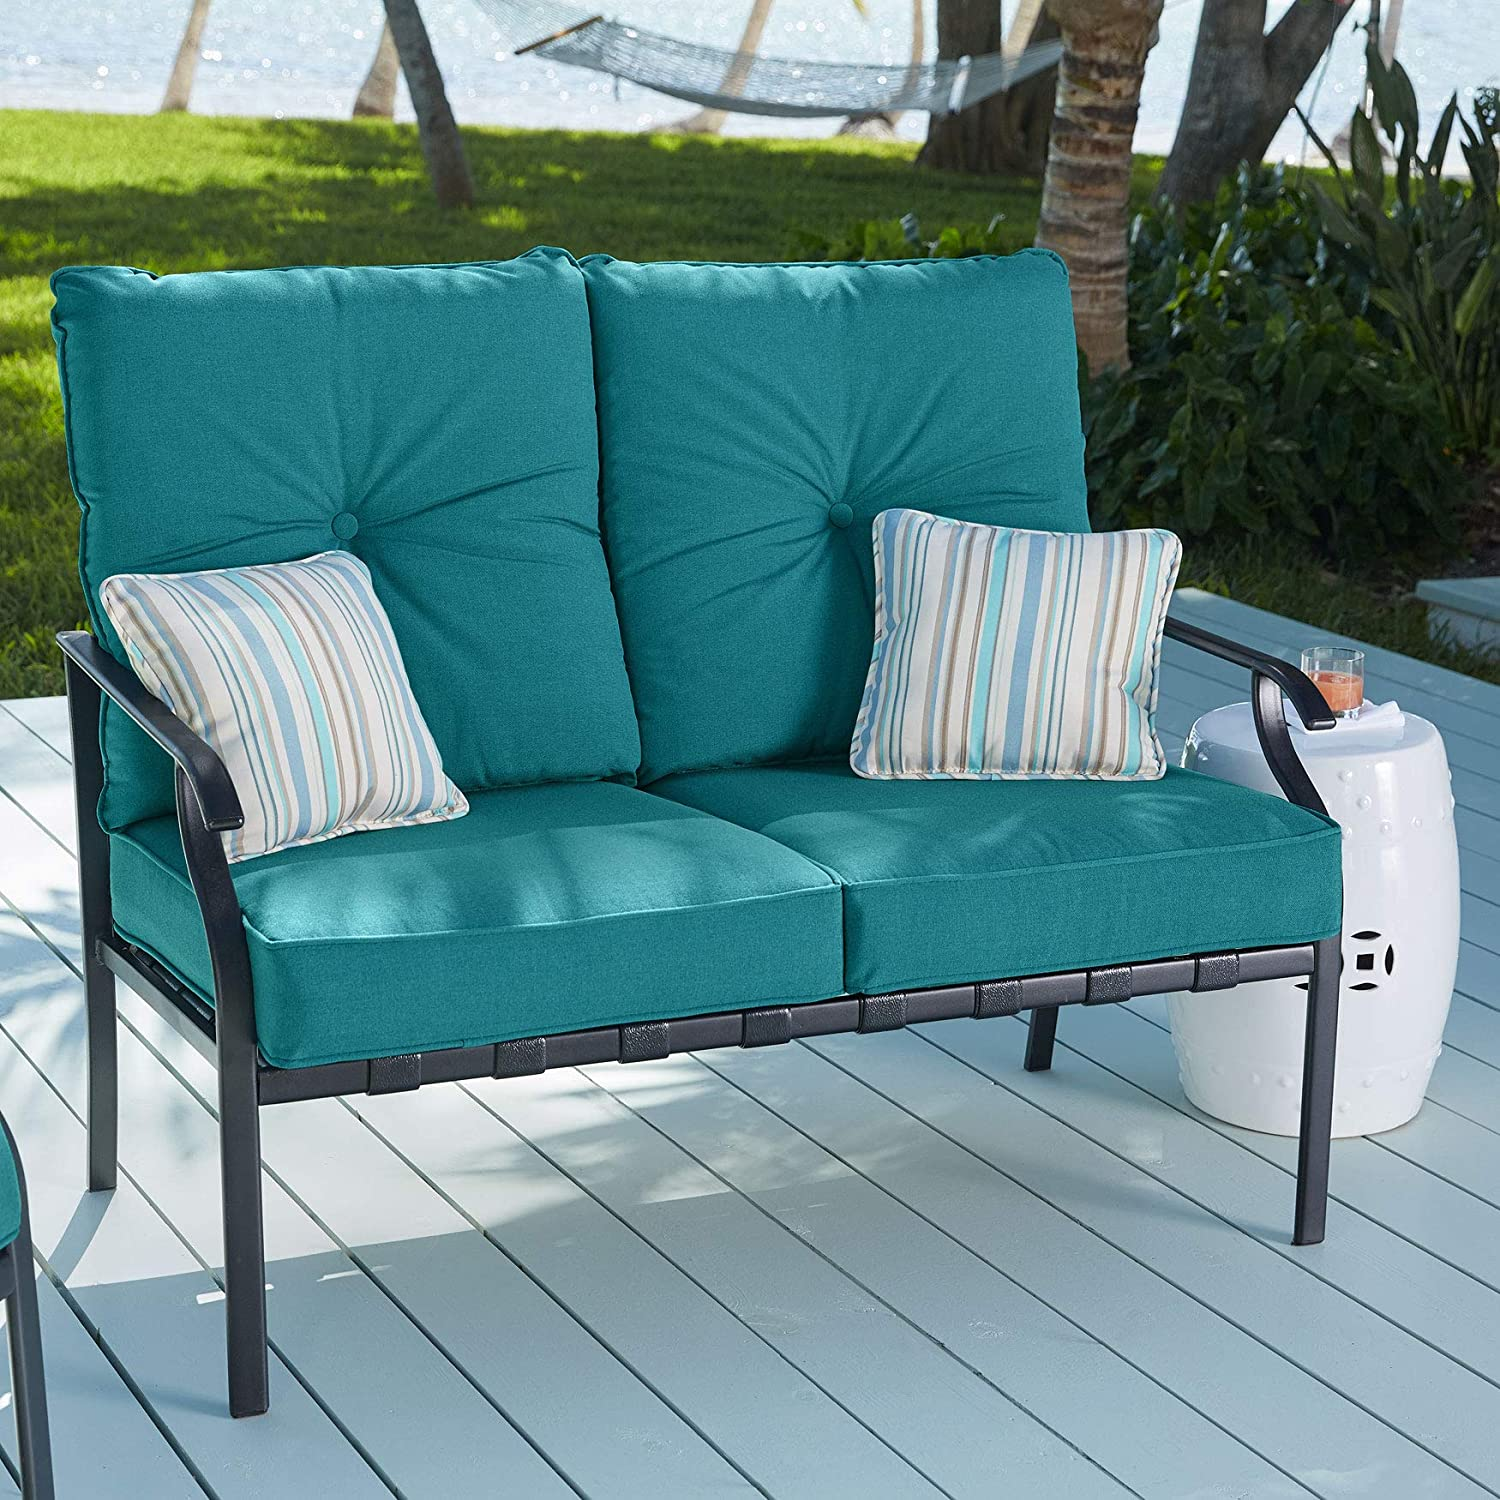 BrylaneHome Deep Seating Steel Slat Loveseat – Teal